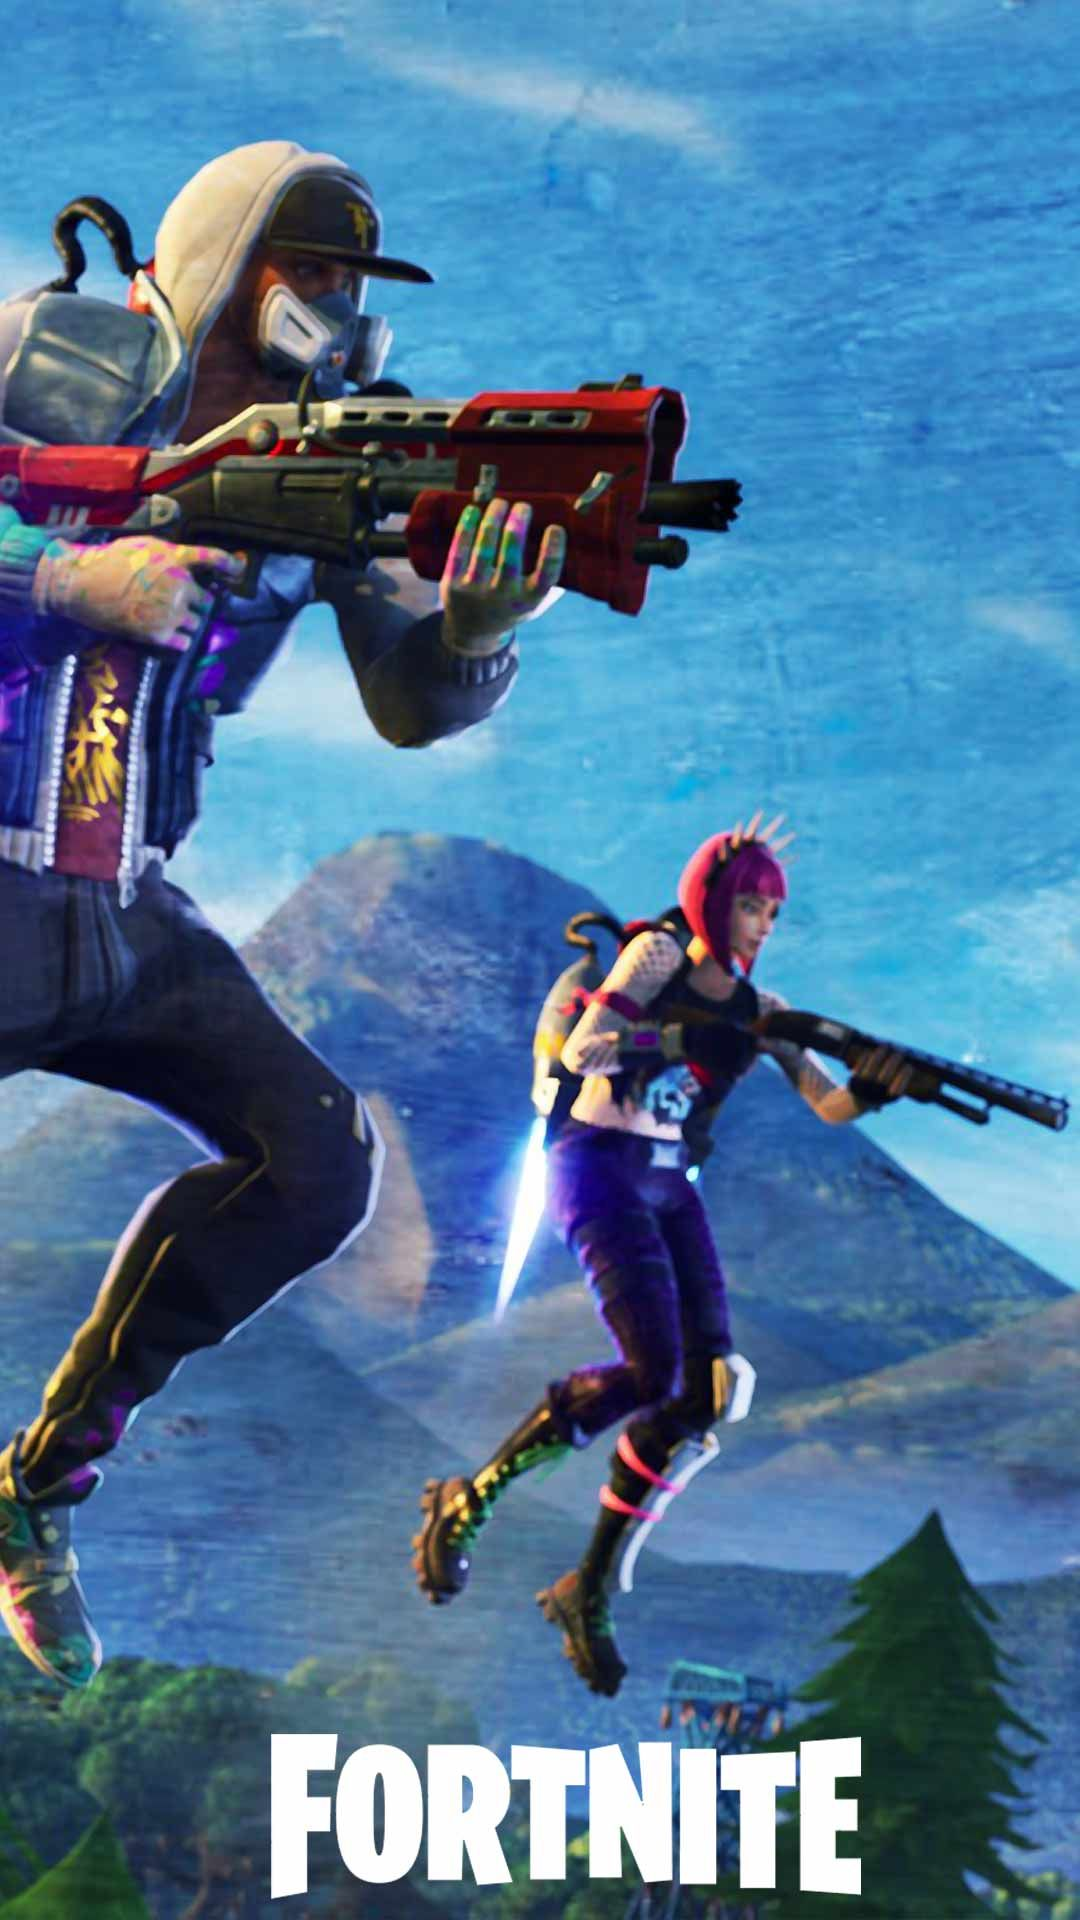 30 Fortnite Wallpaper Hd Phone Backgrounds For Iphone Android Lock Screen Characters Skins Art Phone Backgrounds Wallpaper Gaming Wallpapers